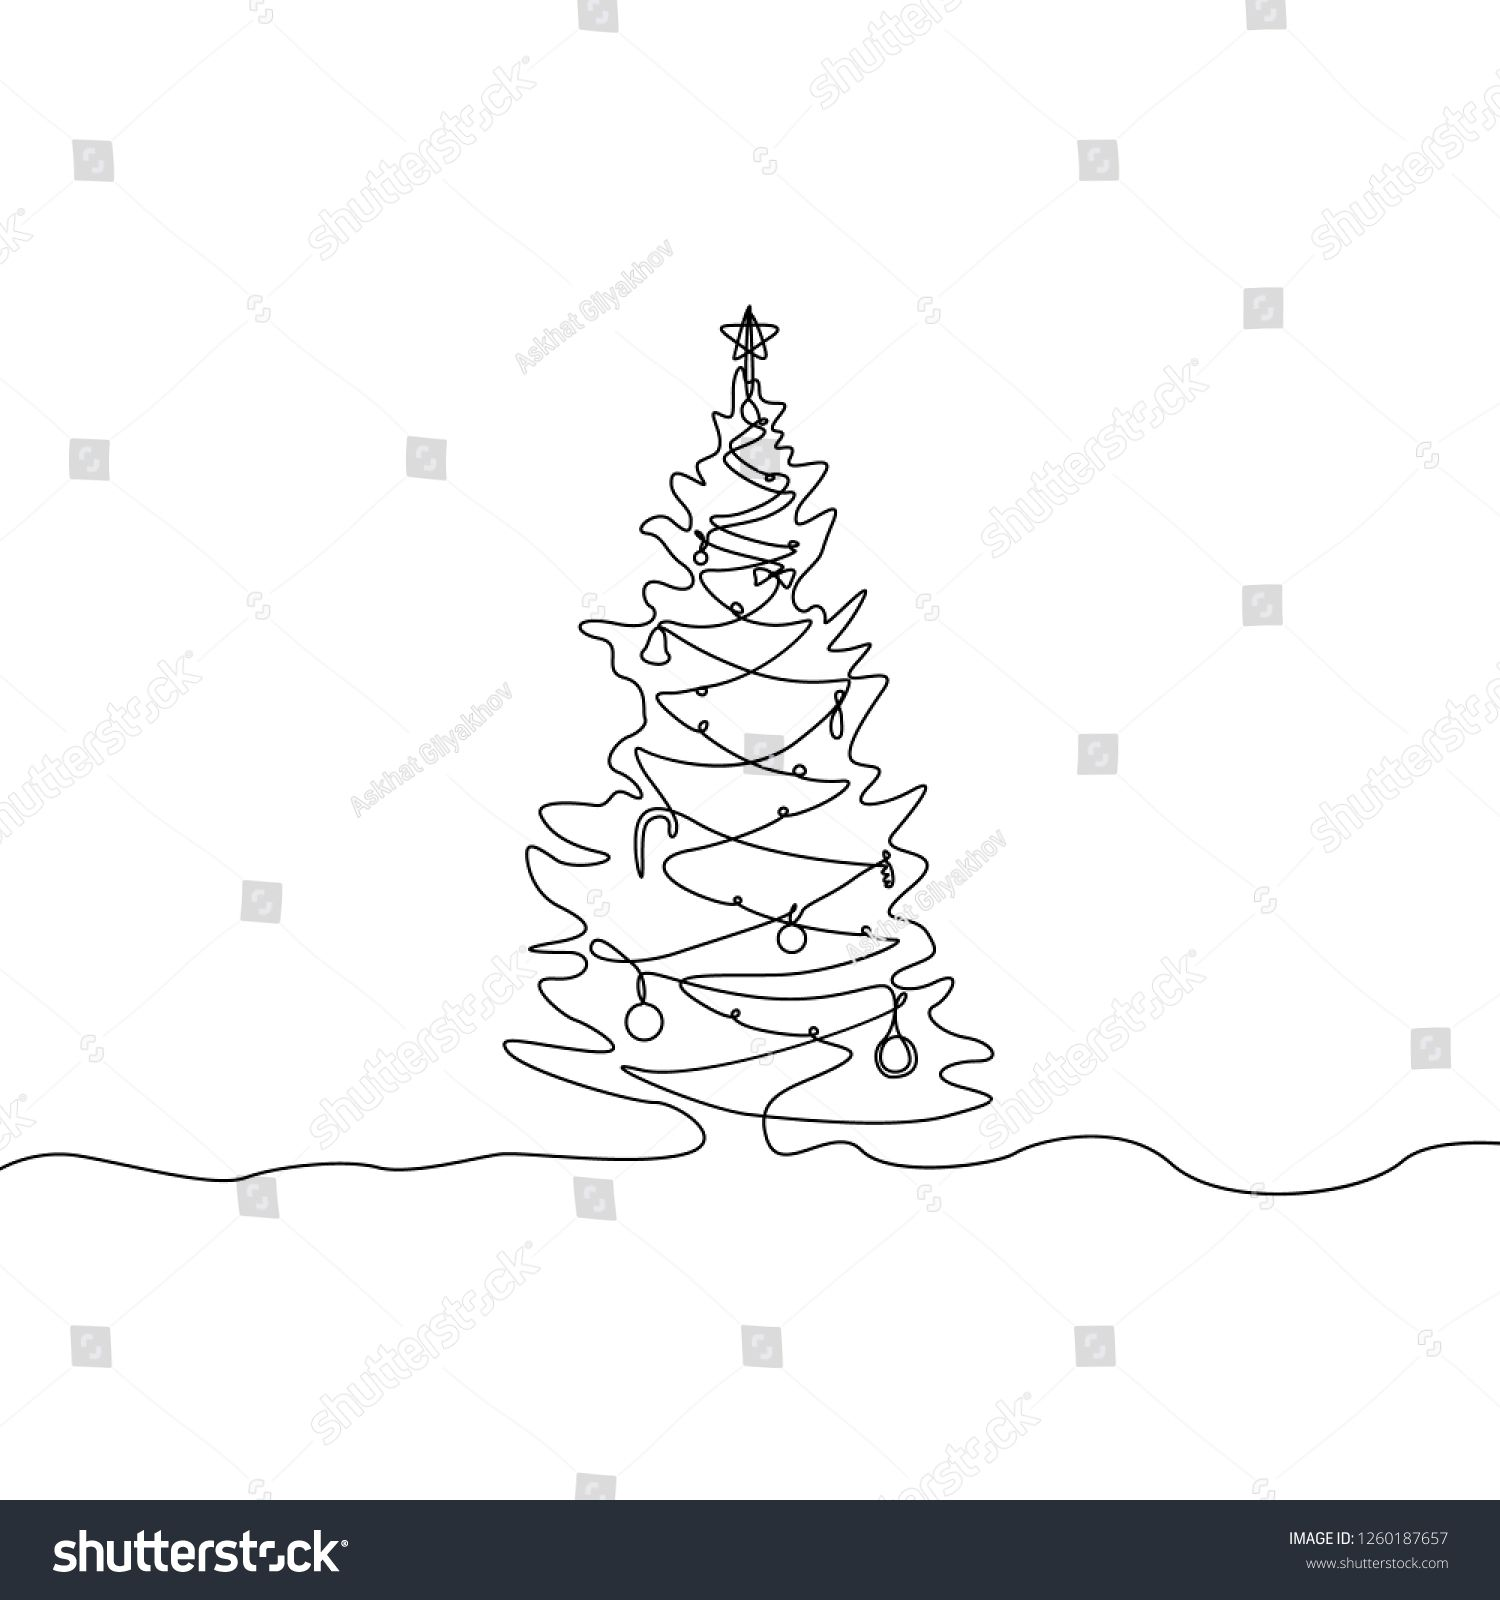 Continuous One Line Christmas Tree With Decorations Tree Line Drawing Christmas Tree Decorations Christmas Tree Clipart